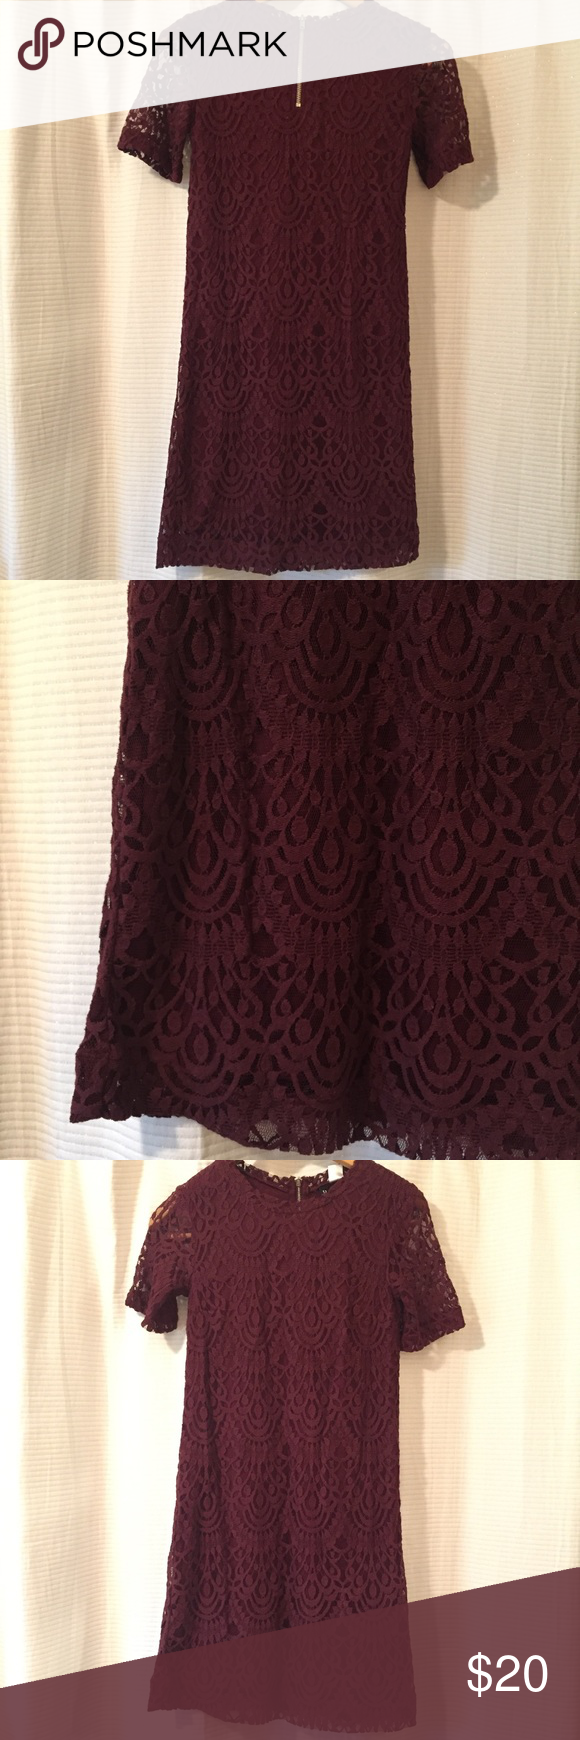 Maroon lace dress such a pretty dress perfect for a wedding or